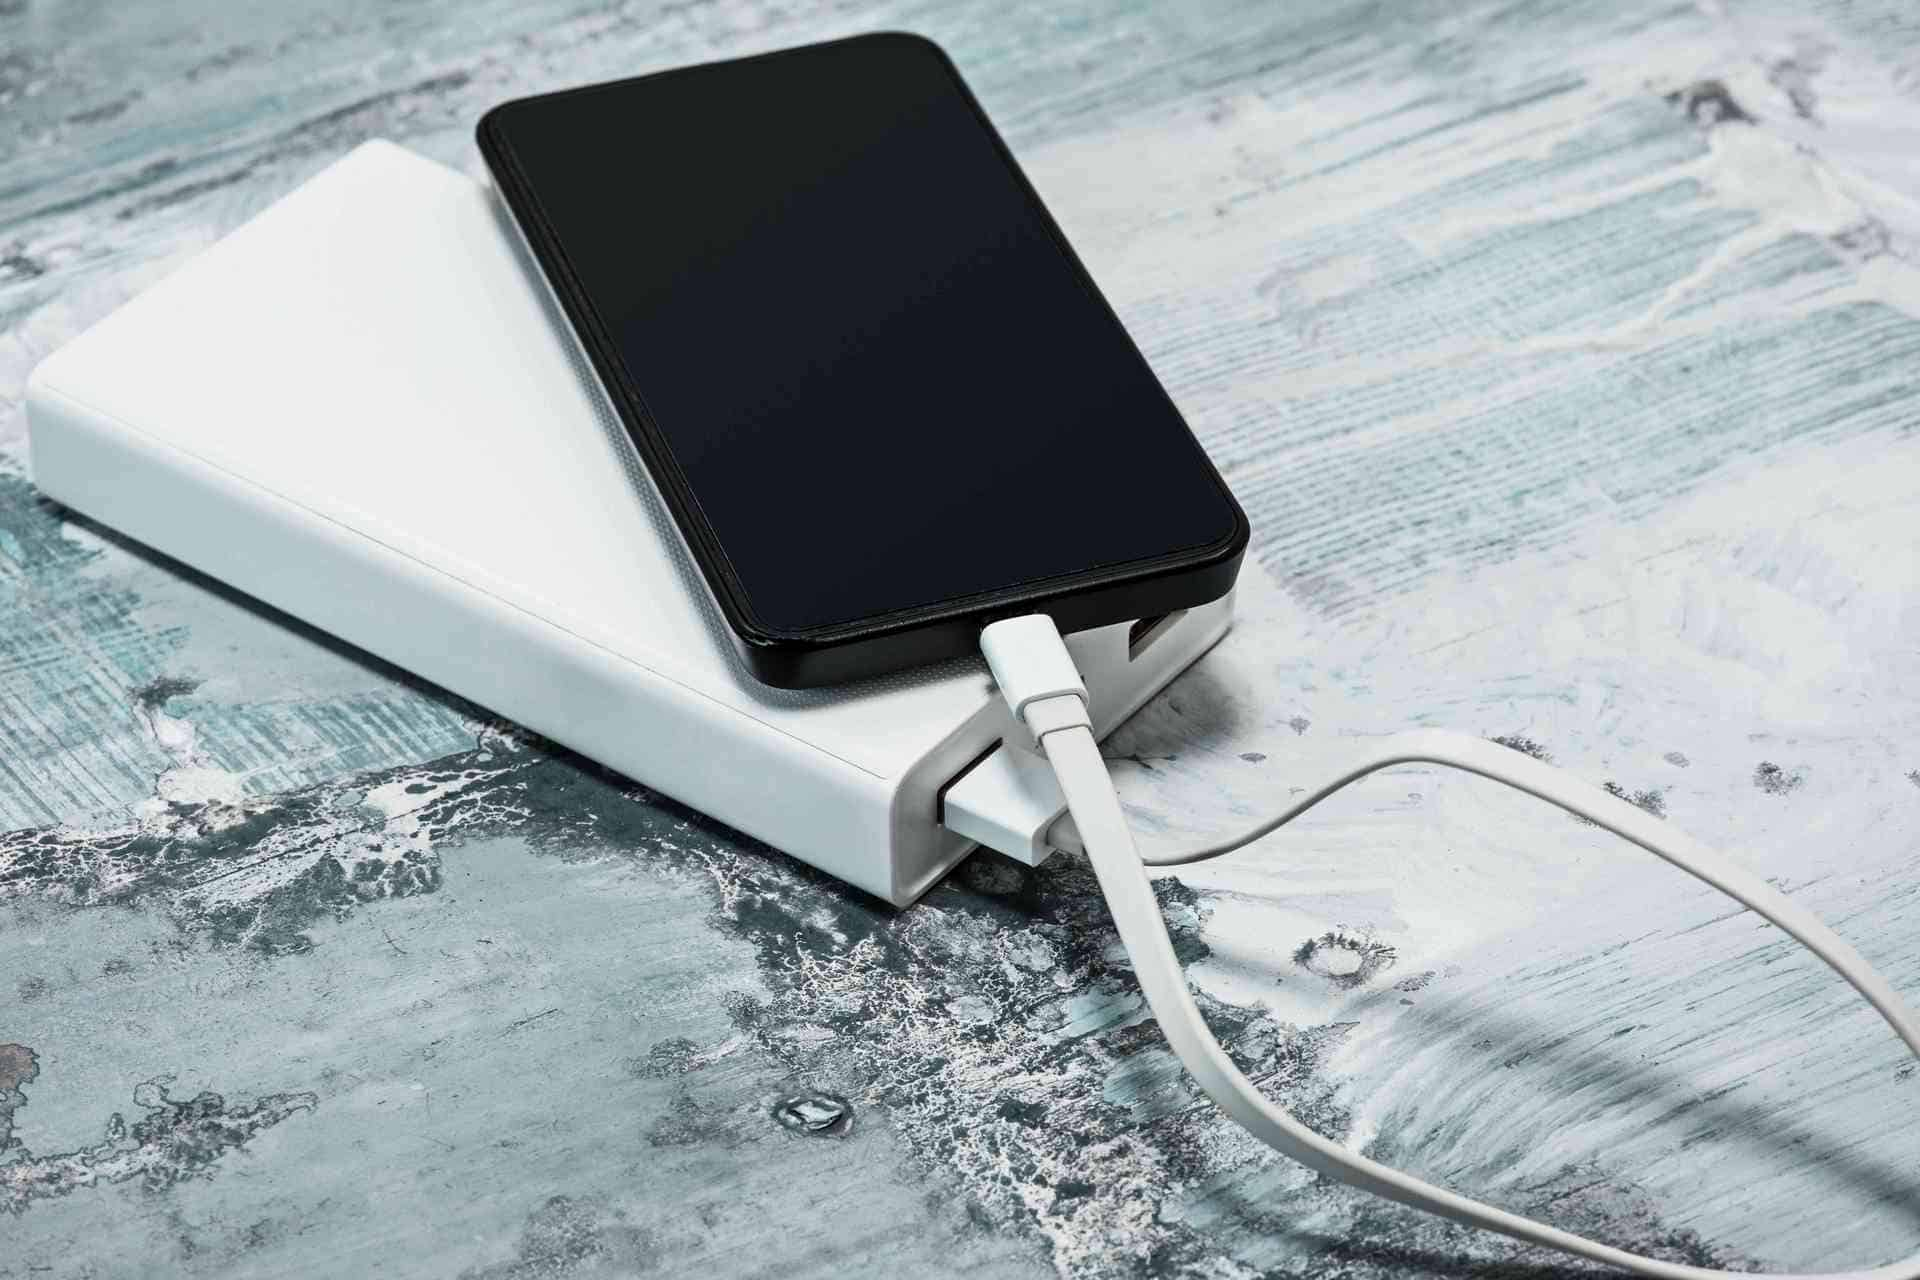 Best Portable Chargers and Power Banks for Phones and Tablets